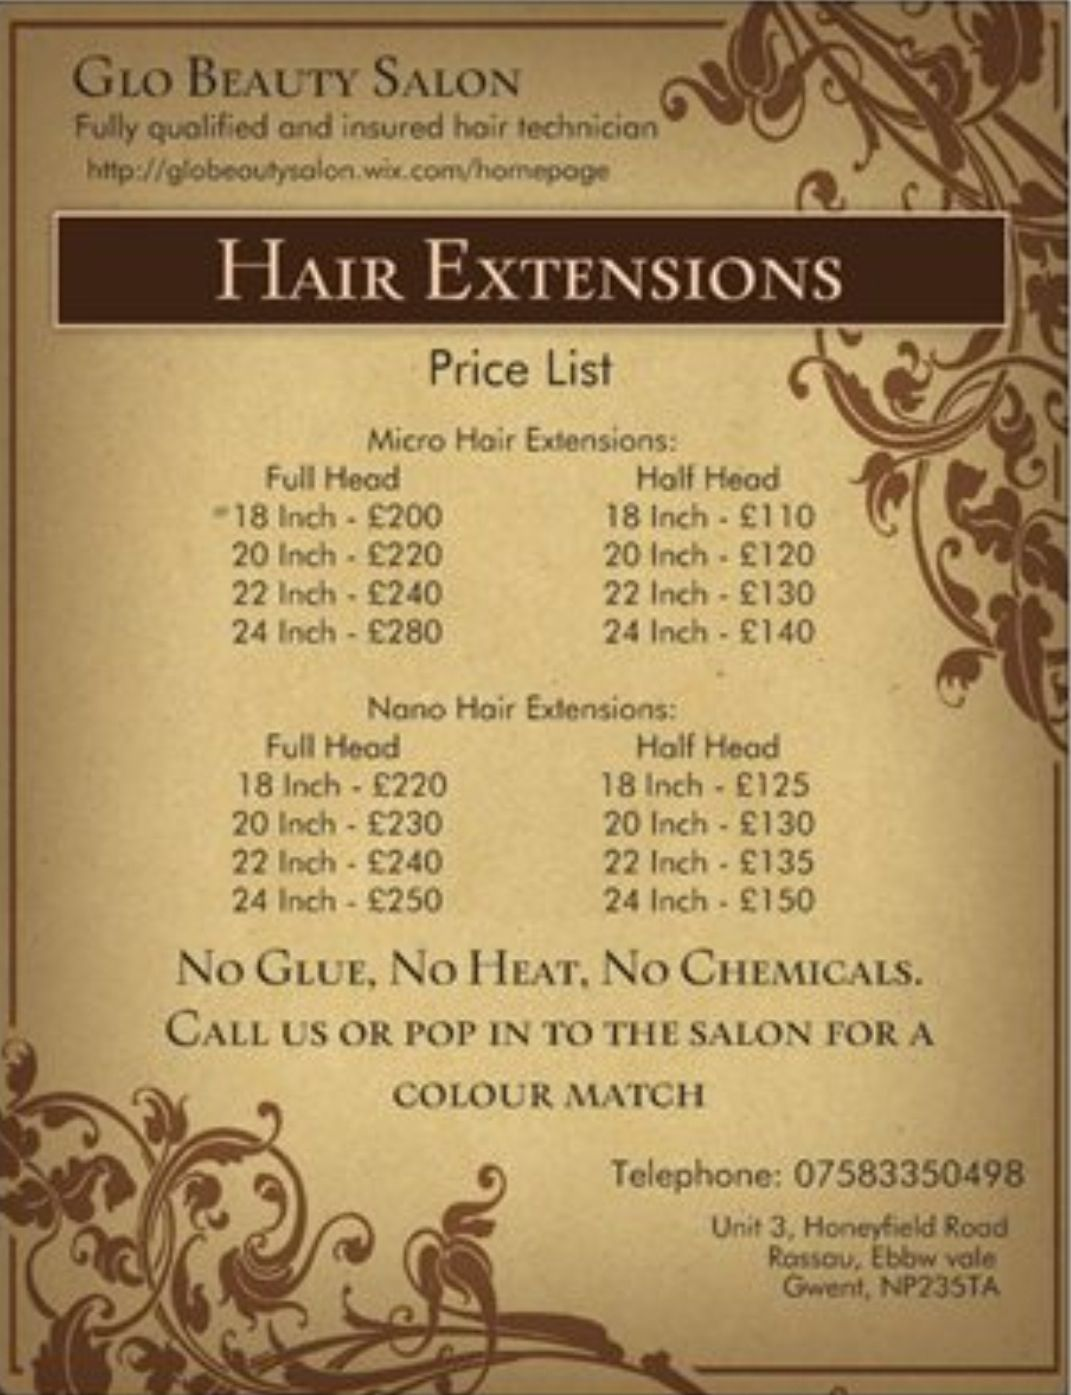 Beauty Salon Prices Hair Extension Price List Advertising Pinterest Hair